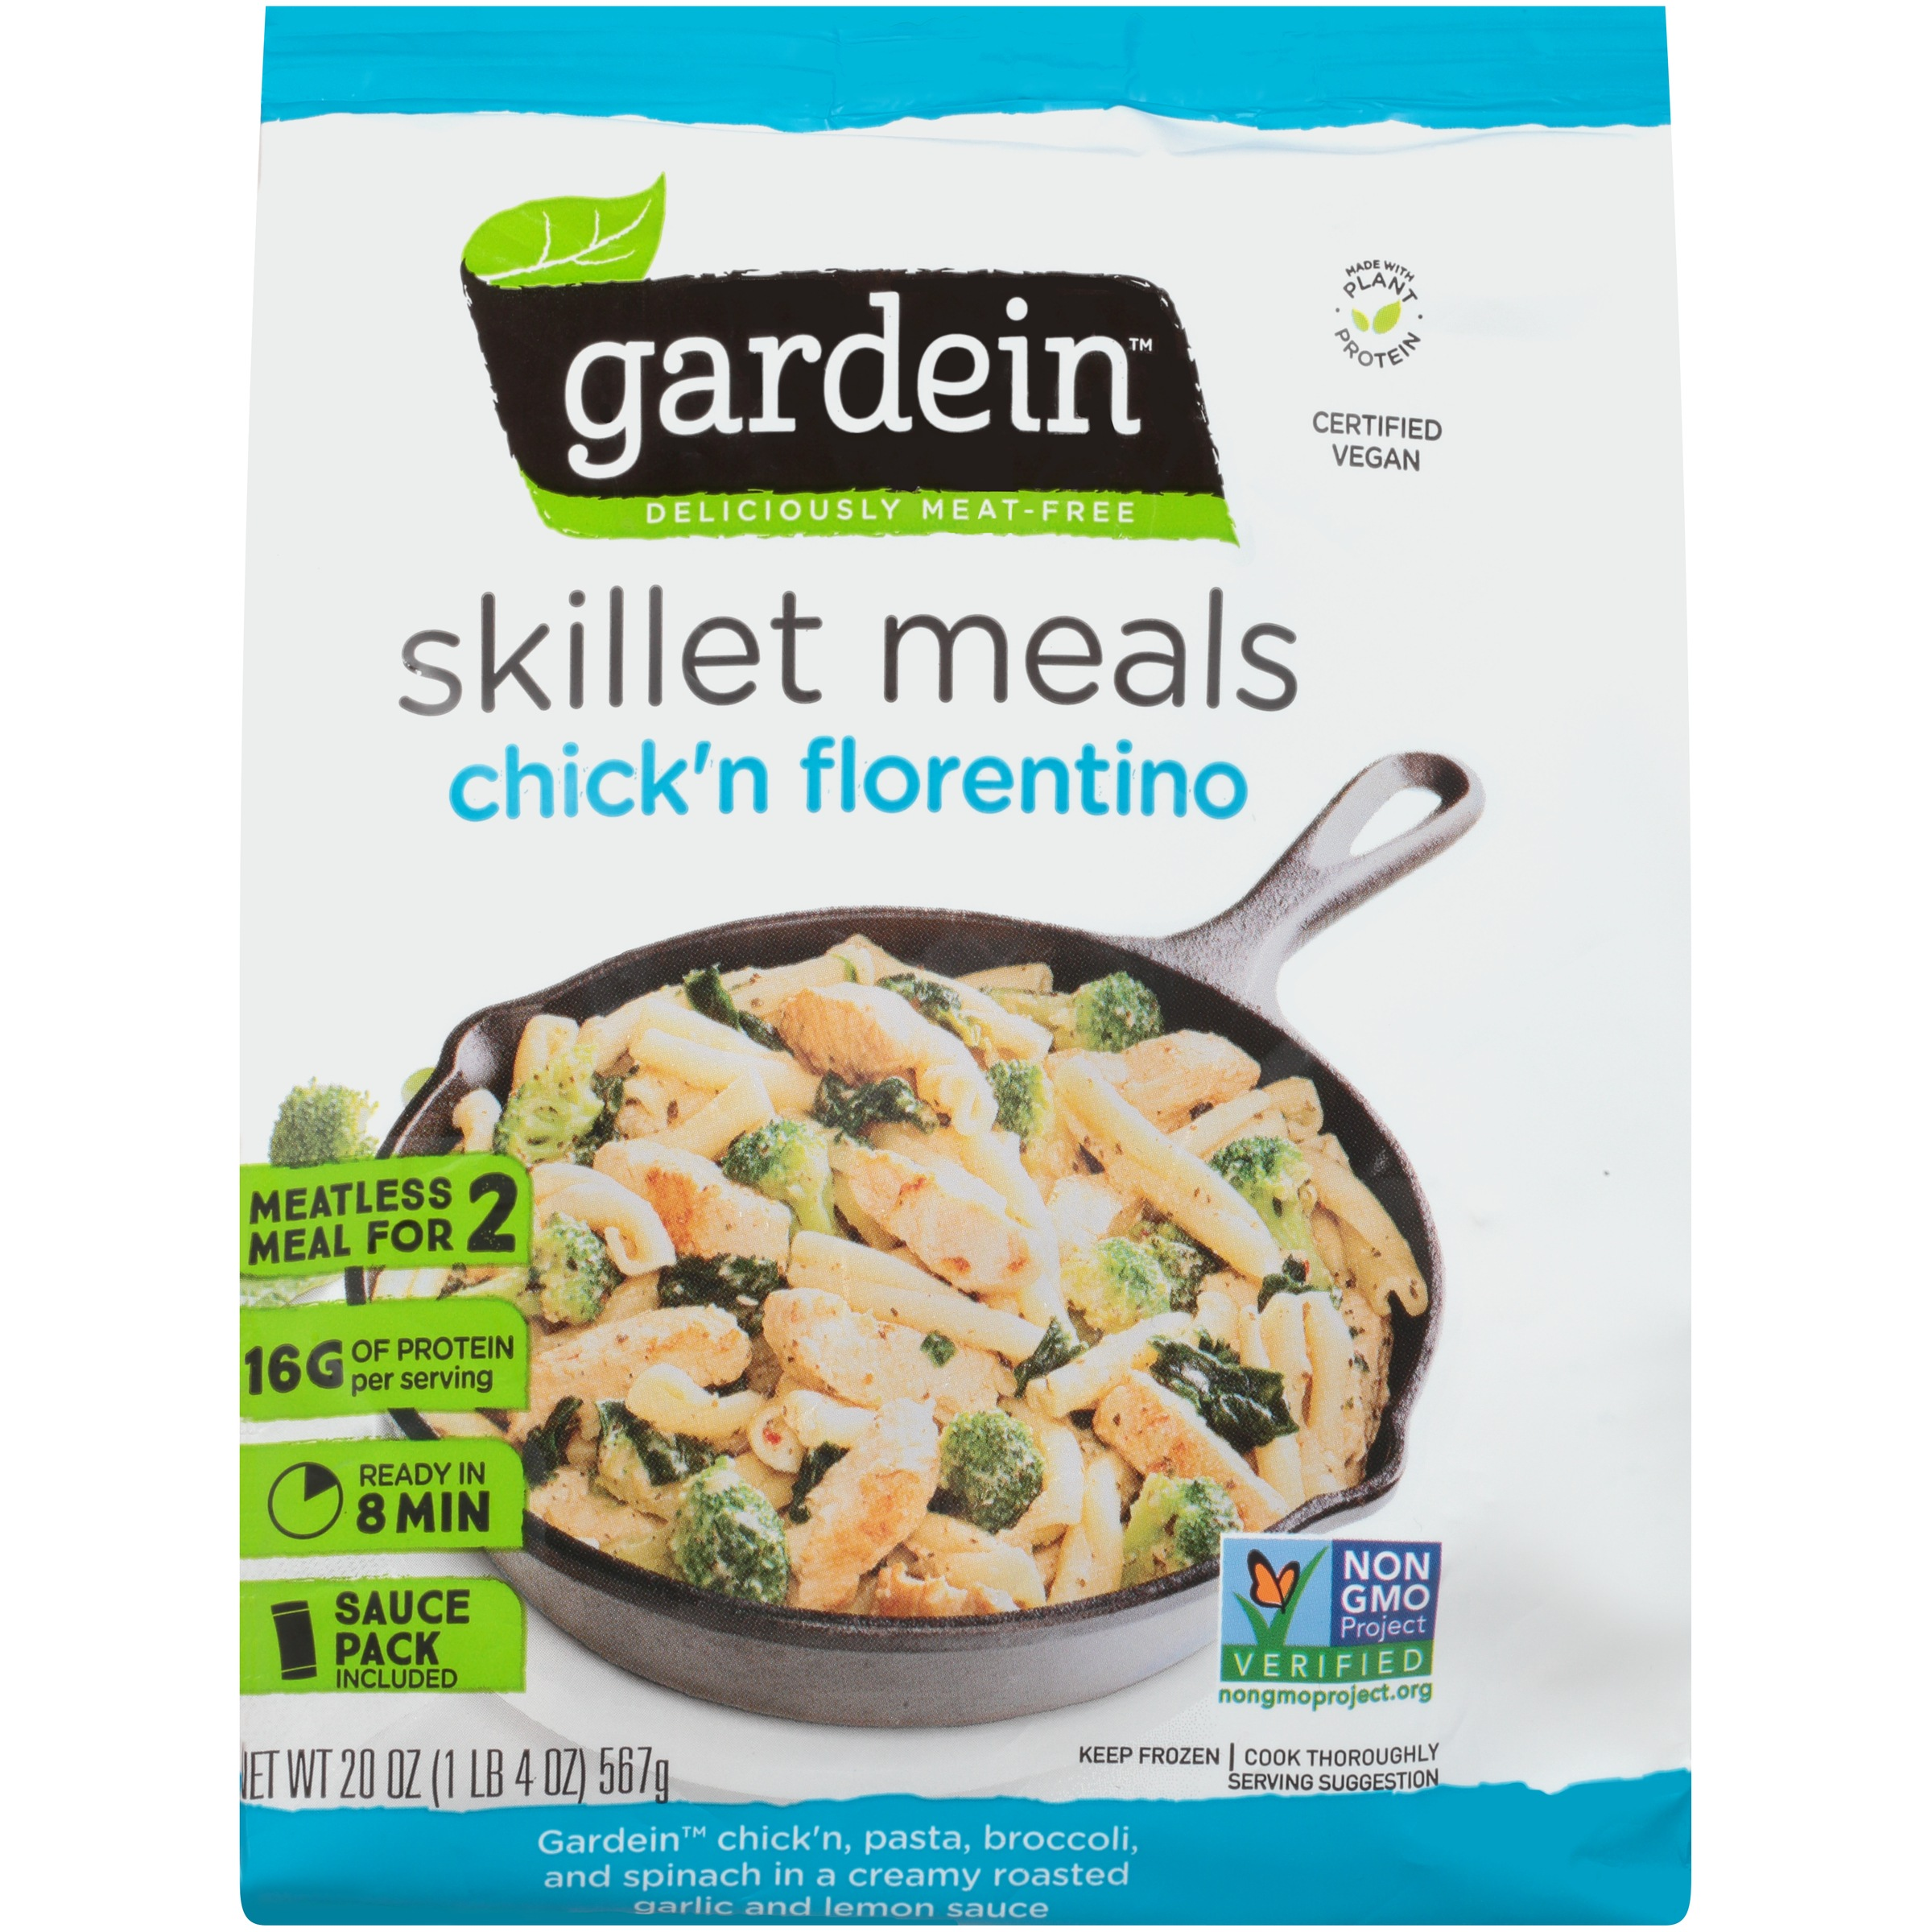 Gardein™ Chick'n Florentino Deliciously Meat-Free Skillet Meals 20 oz. Bag